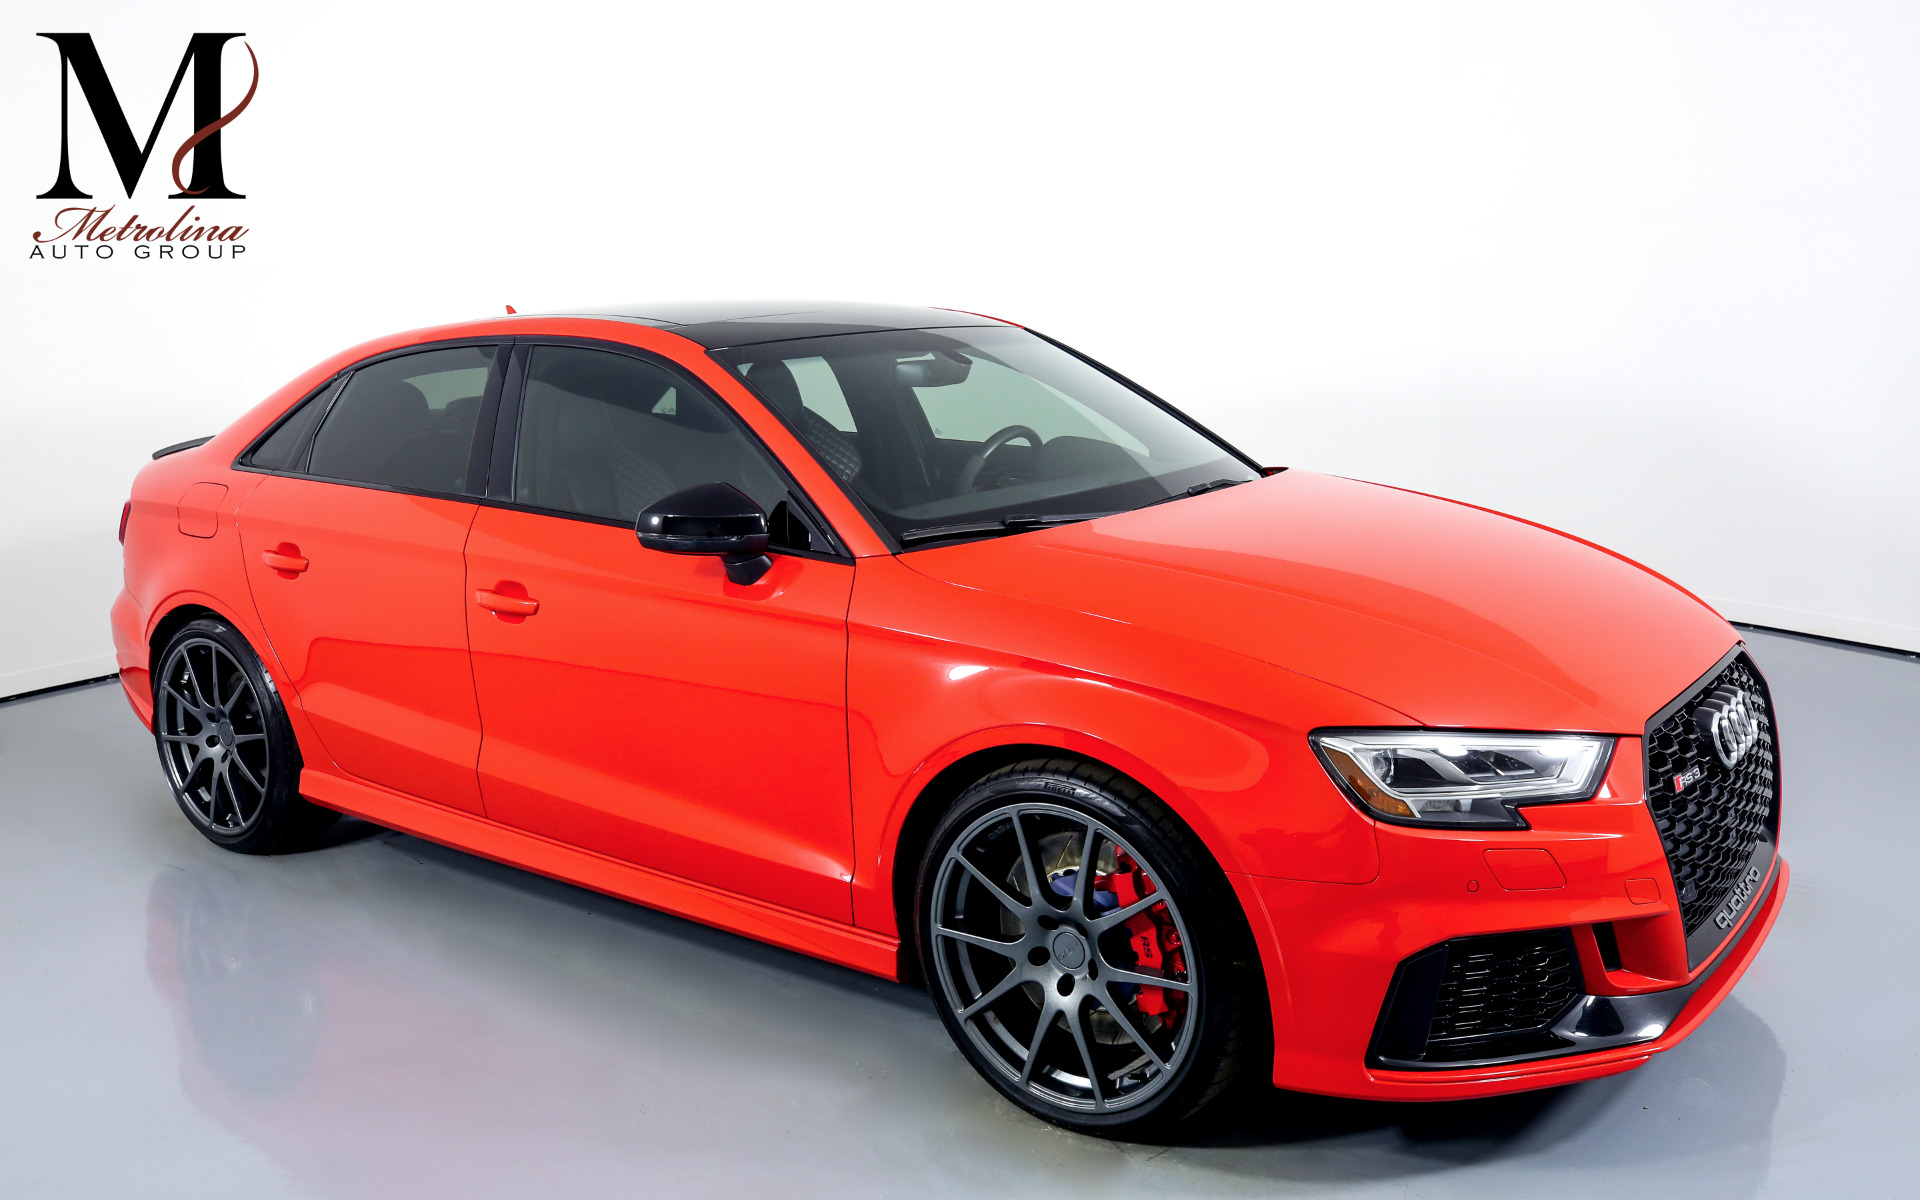 Used 2018 Audi RS 3 2.5T quattro for sale Call for price at Metrolina Auto Group in Charlotte NC 28217 - 1